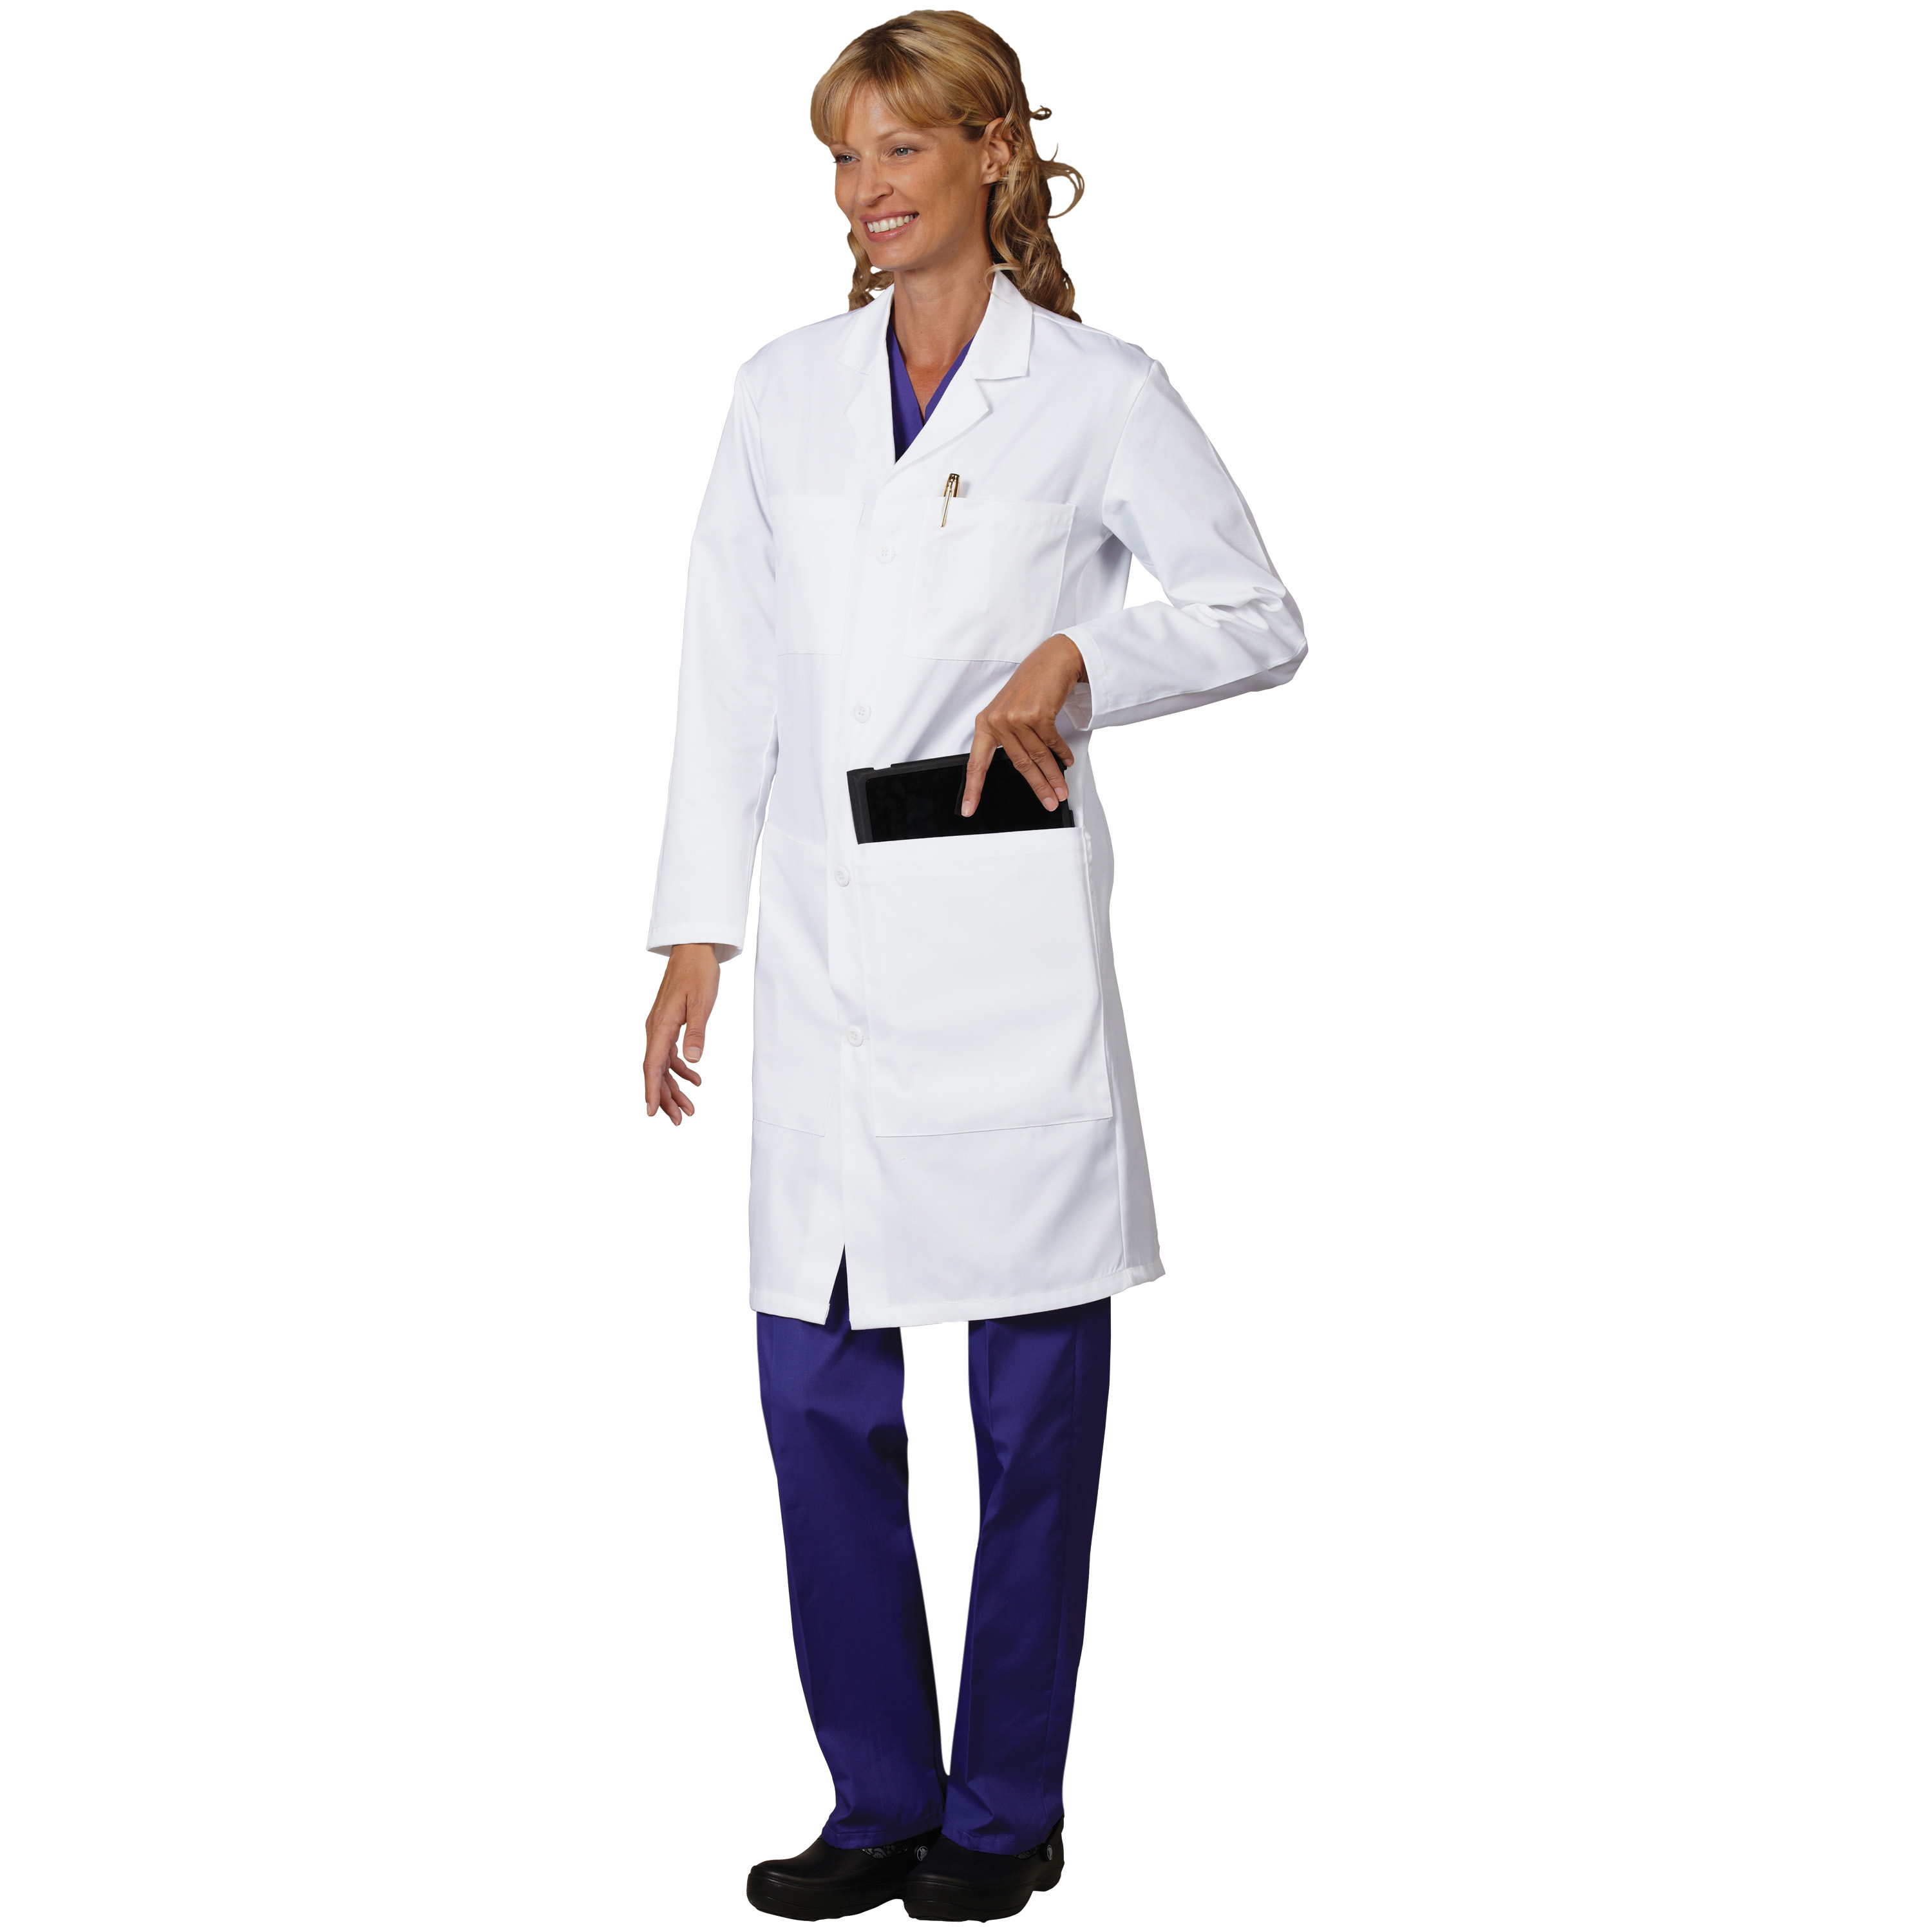 Unisex Consultation Lab Coat